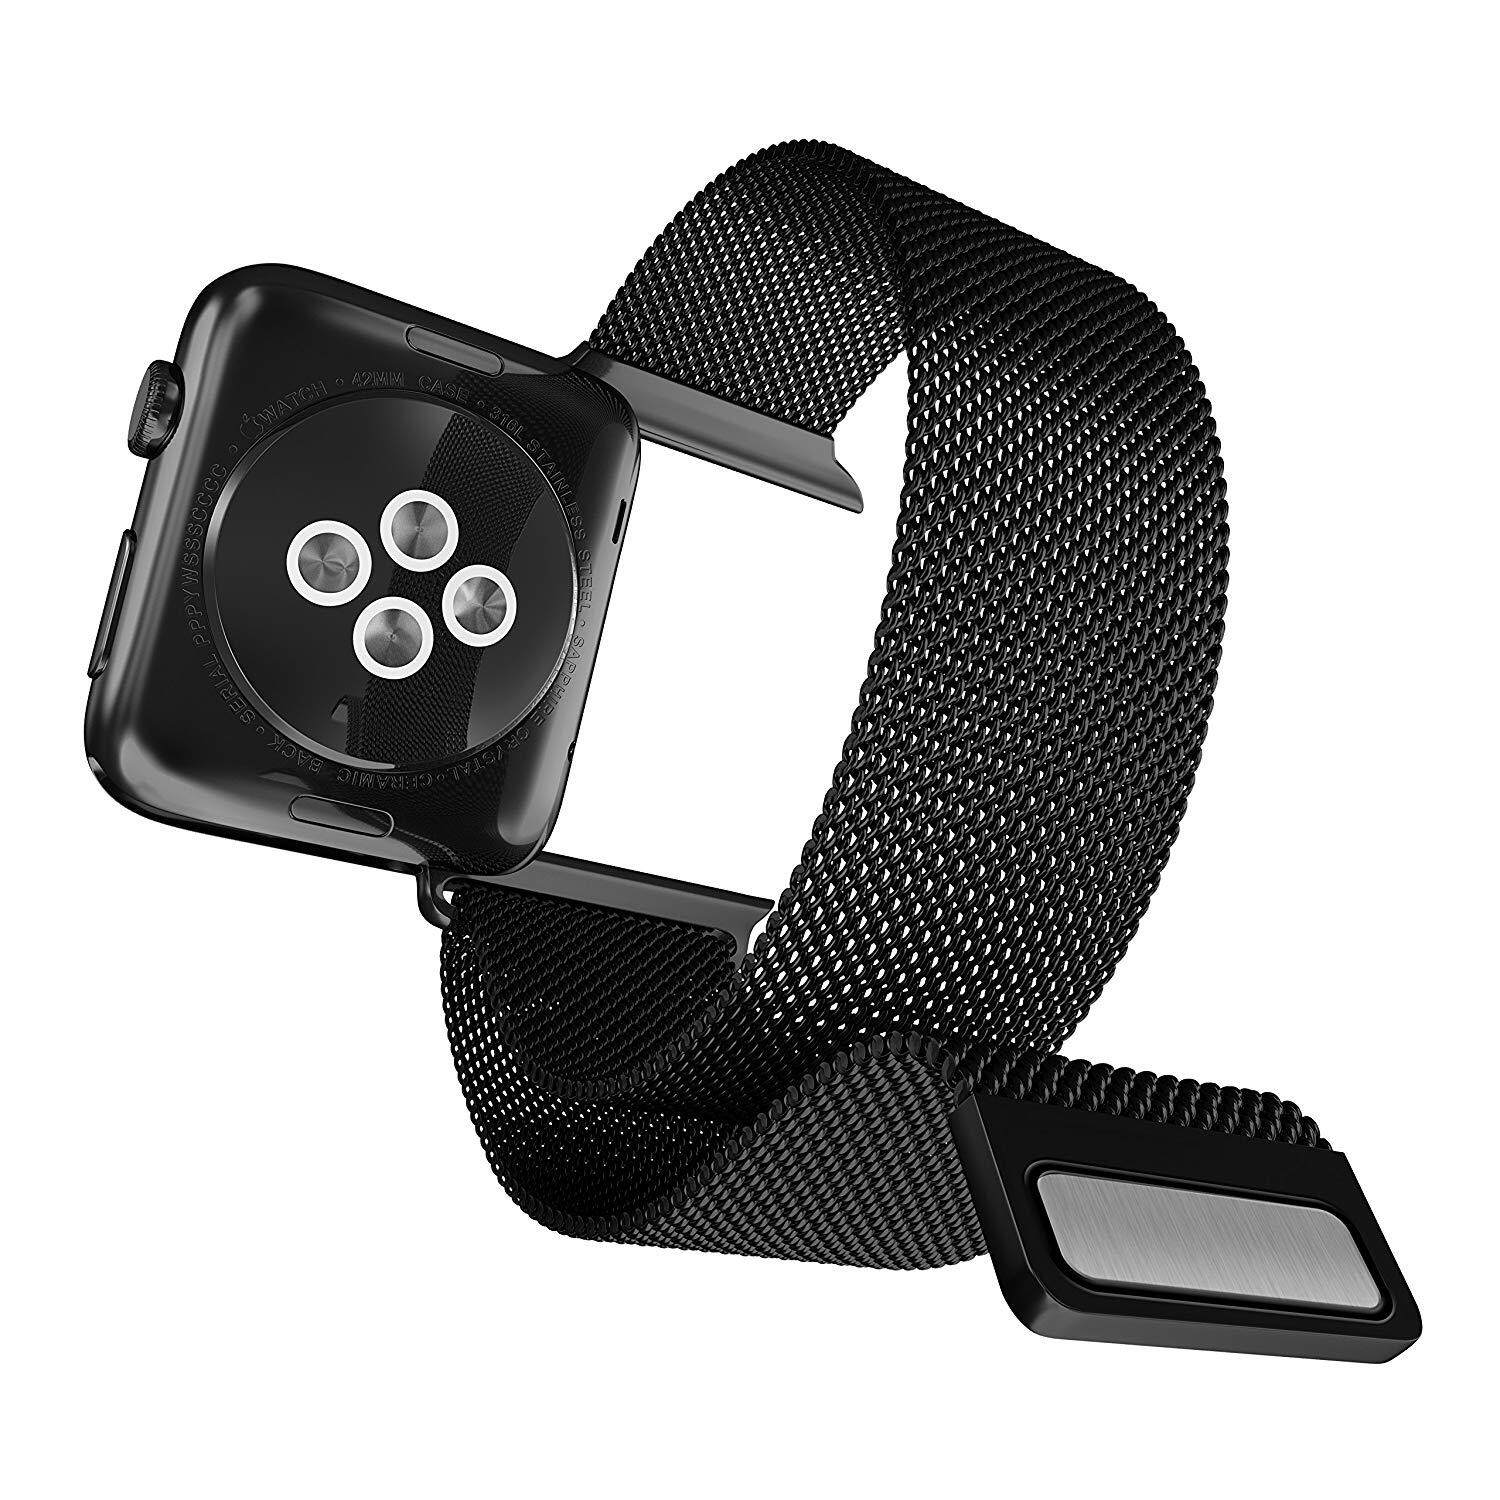 X-Doria 42mm Apple Watch Replacement Band, Mesh Band Metal Loop Band (Black) - Compatible with Apple Watch Series 1, Series 2 and Nike+